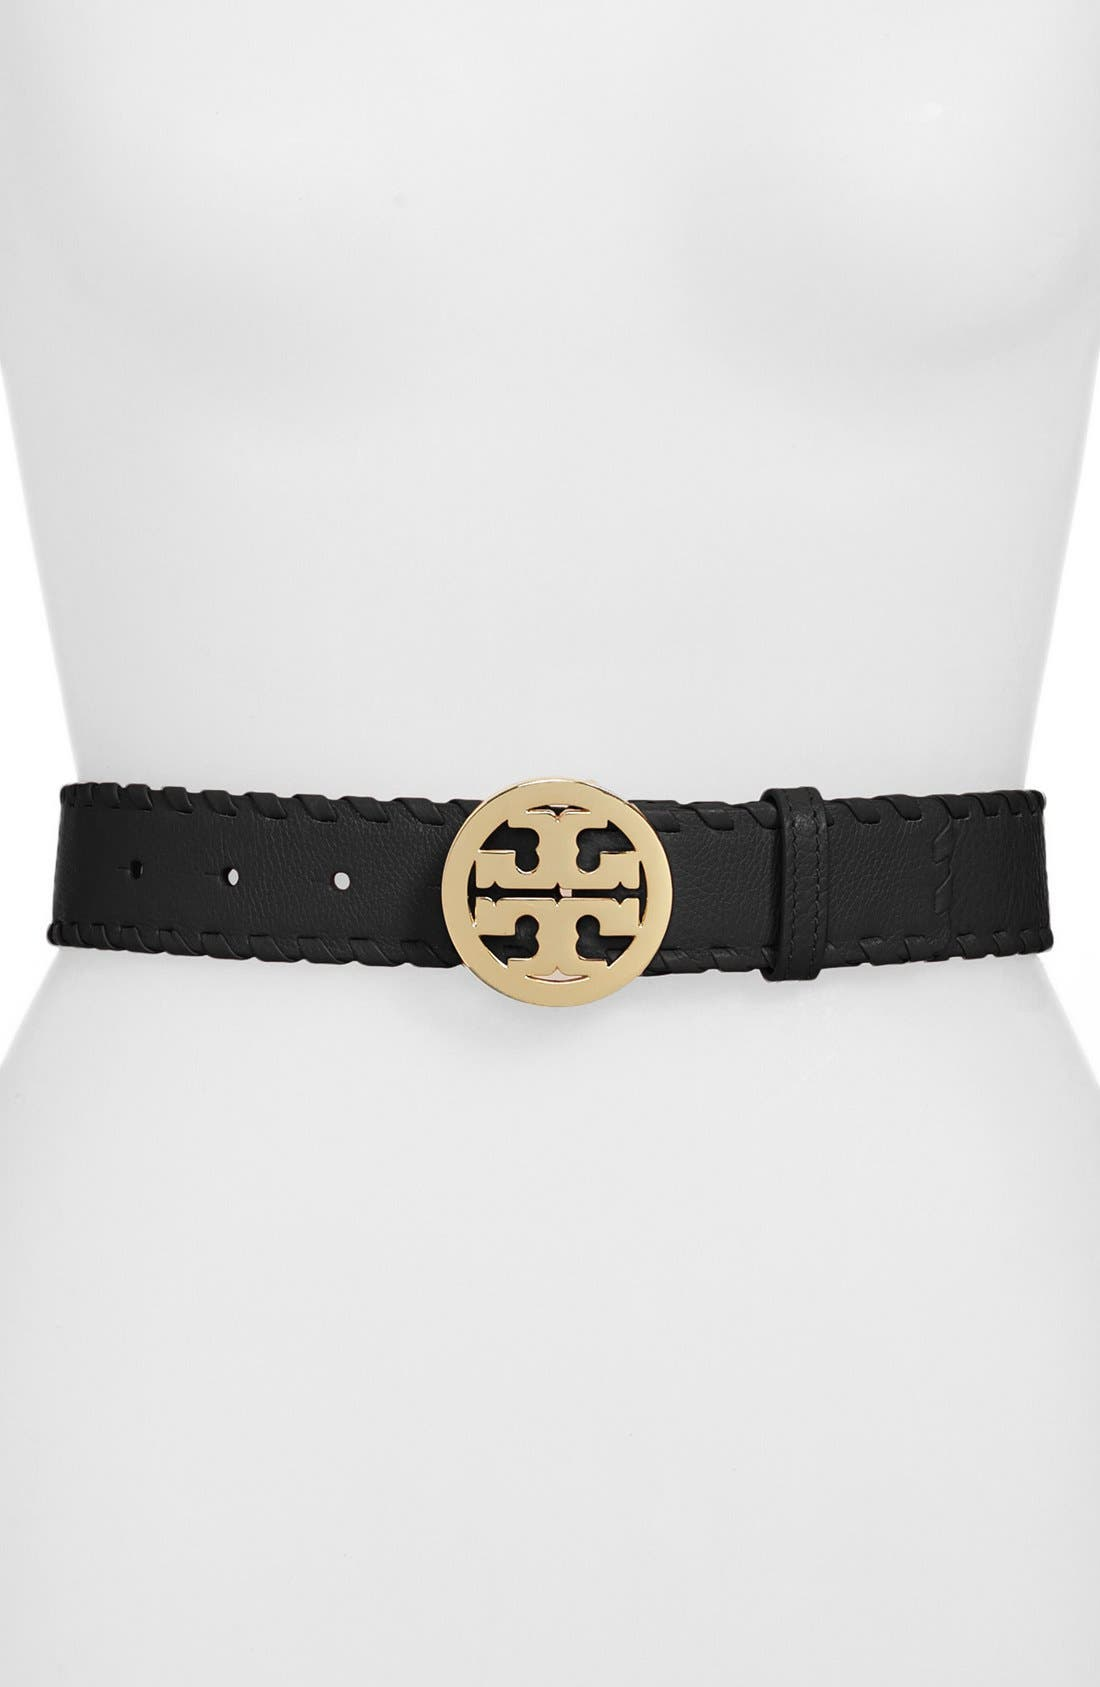 TORY BURCH, 'Marion' Whipstitch Logo Belt, Main thumbnail 1, color, 001